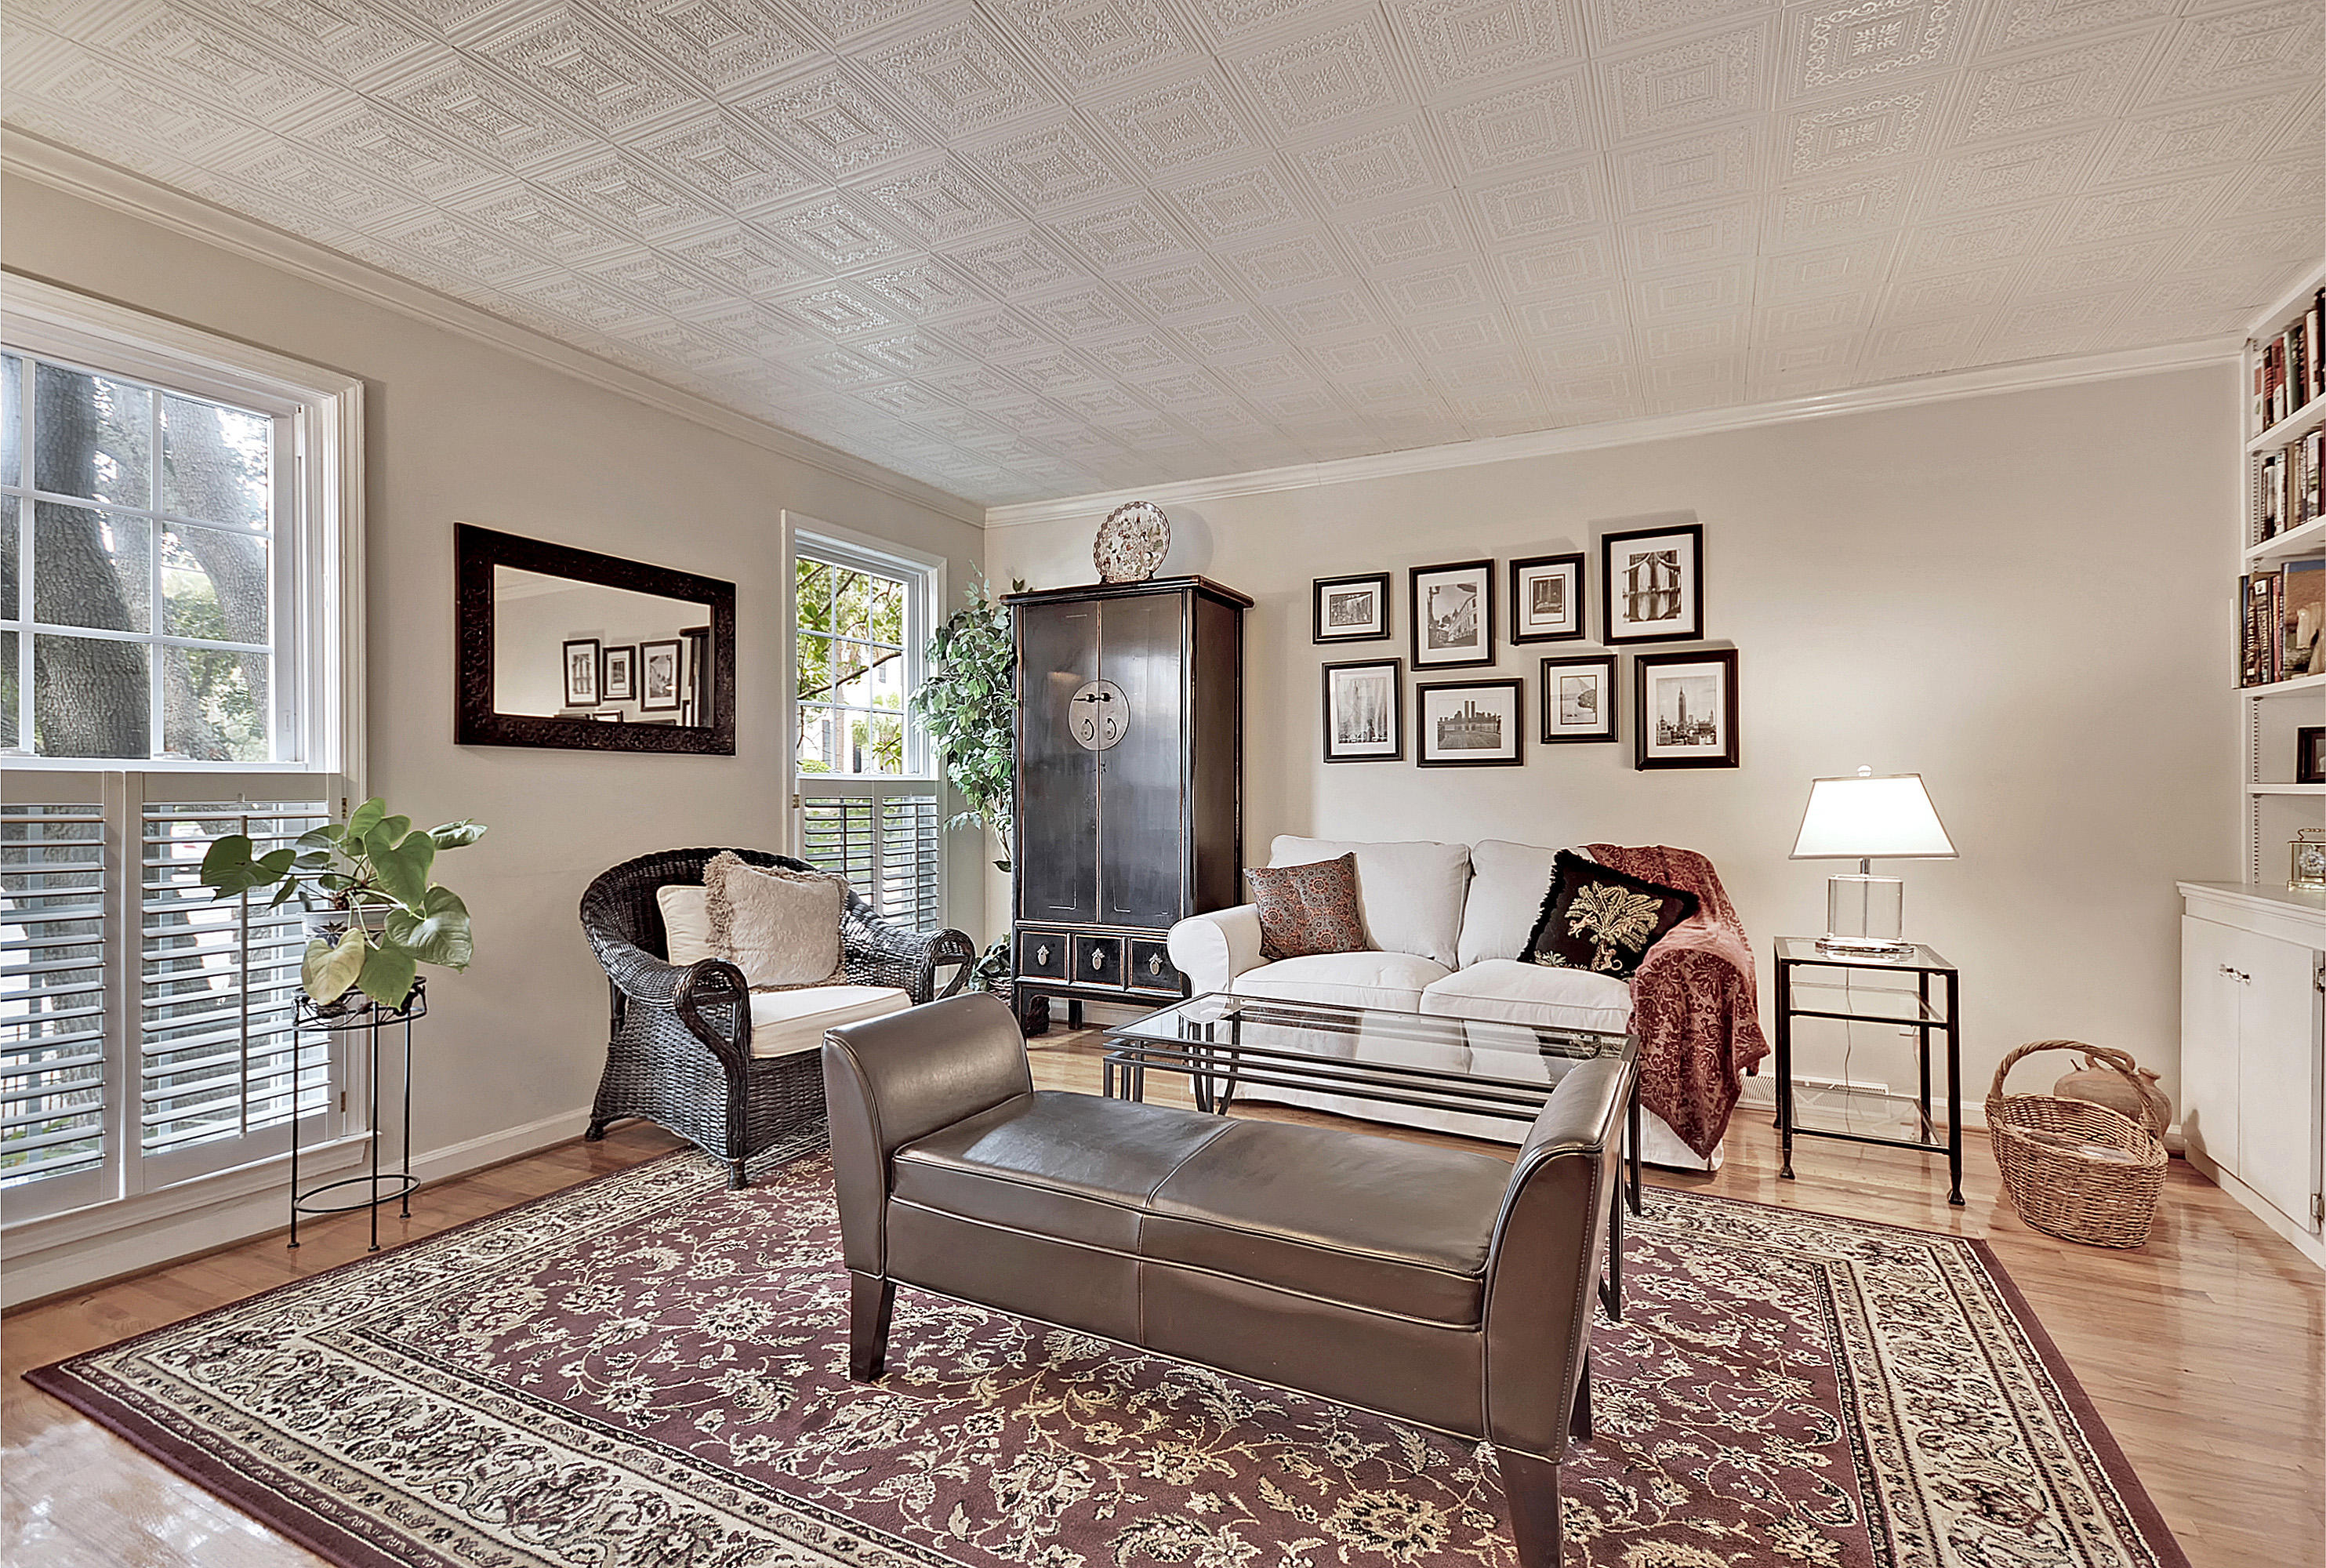 South of Broad Homes For Sale - 0 Rutledge, Charleston, SC - 42